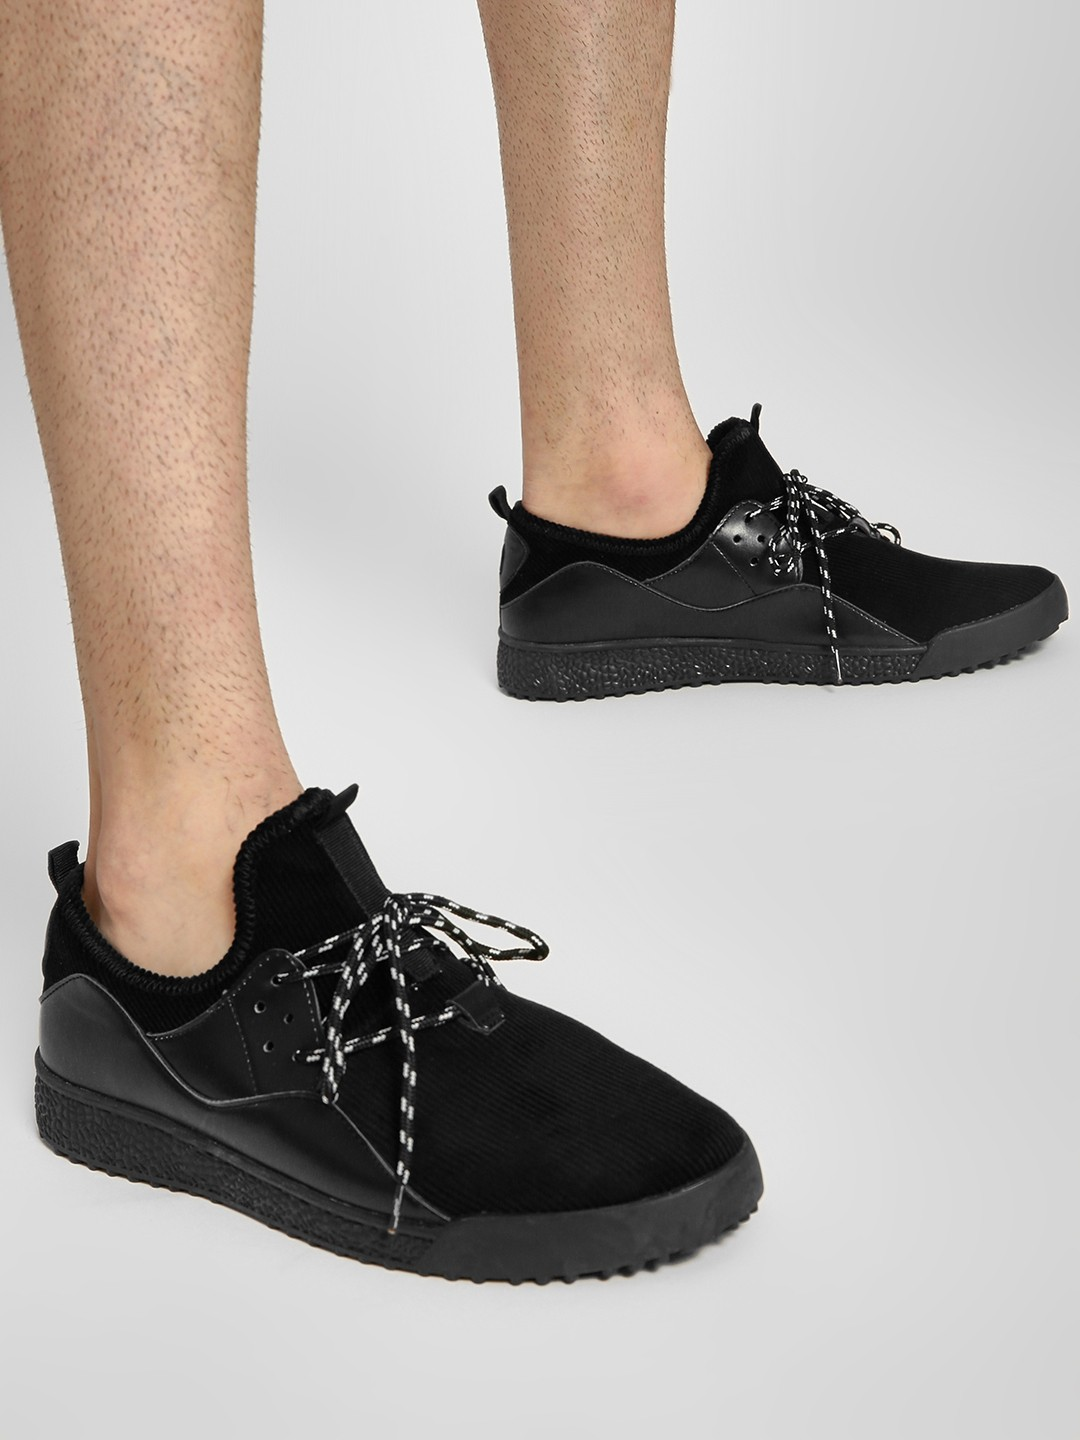 Buy Kindred Black Corduroy Casual Shoes